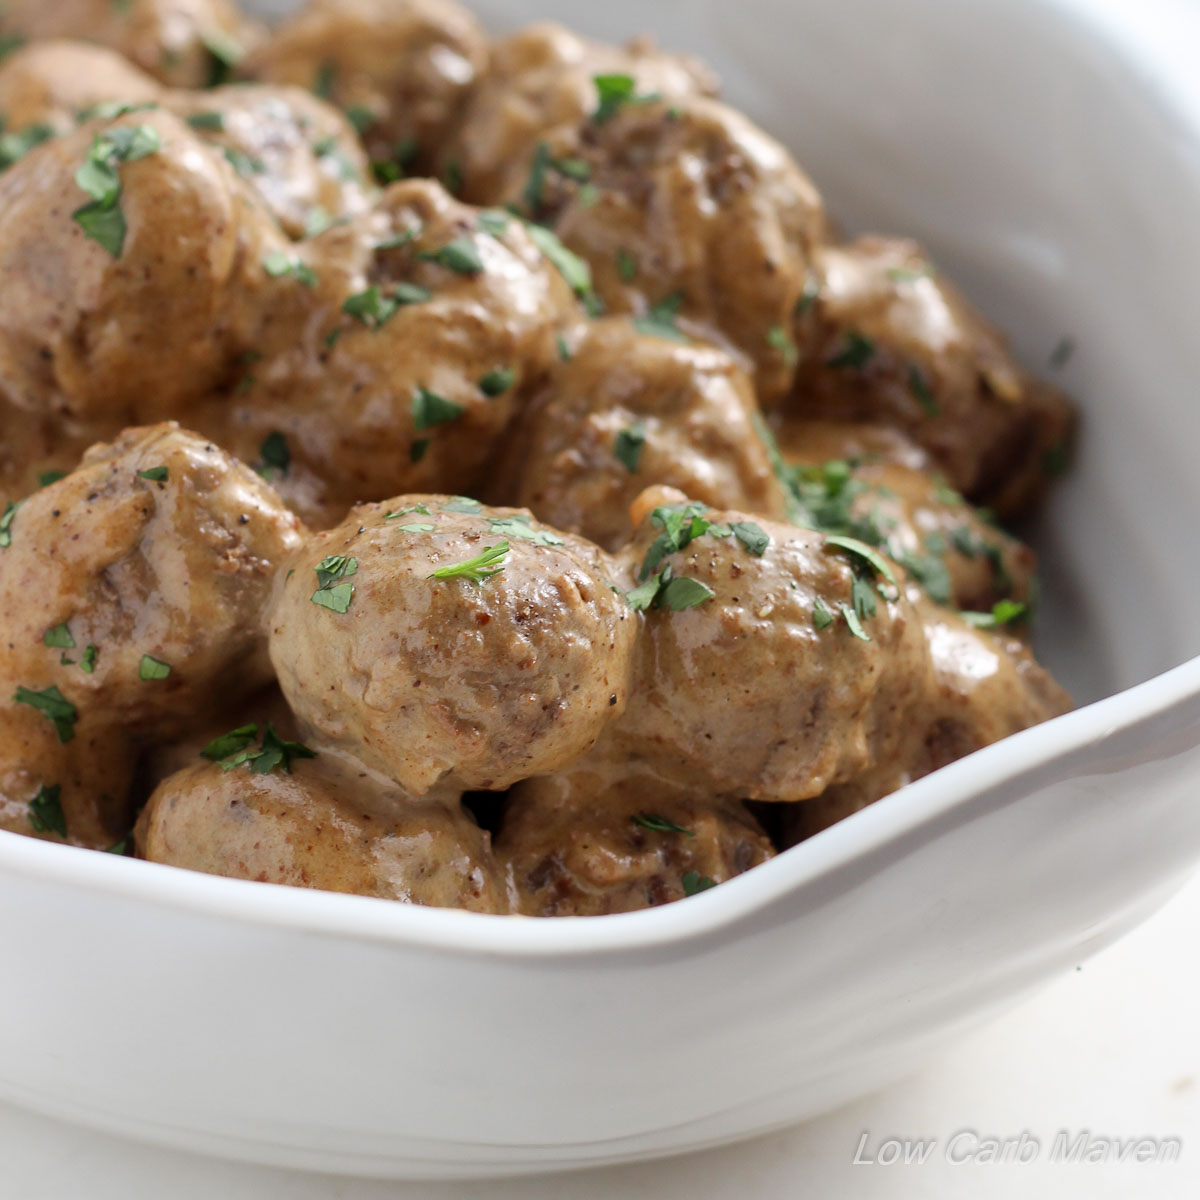 Low Carb Swedish Meatballs | Low Carb Maven